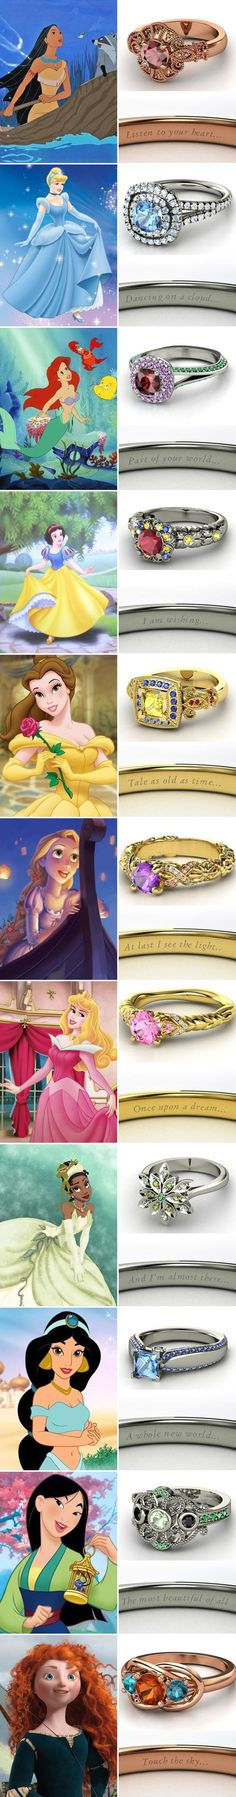 Disney princess wedding rings! Love them <3